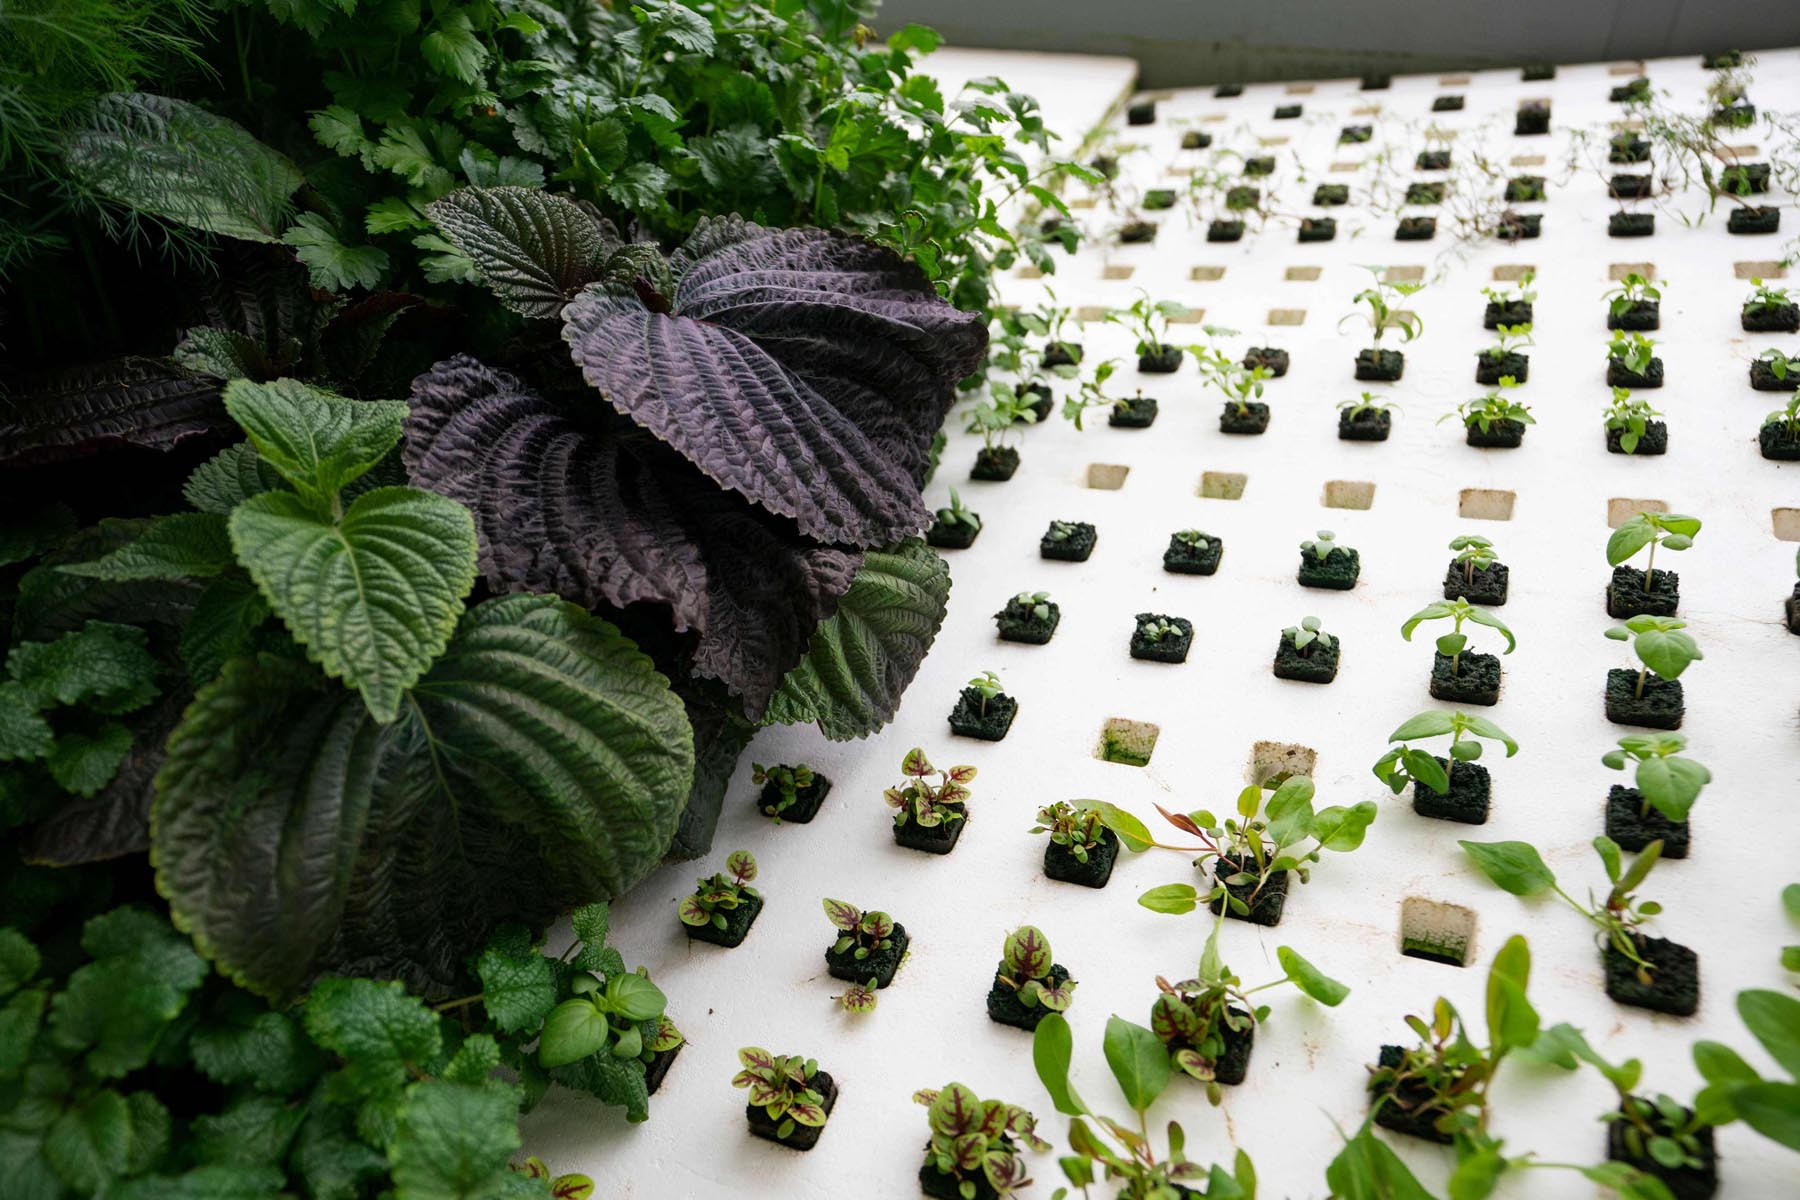 Greens are grown at a vertical farm. (AFP)